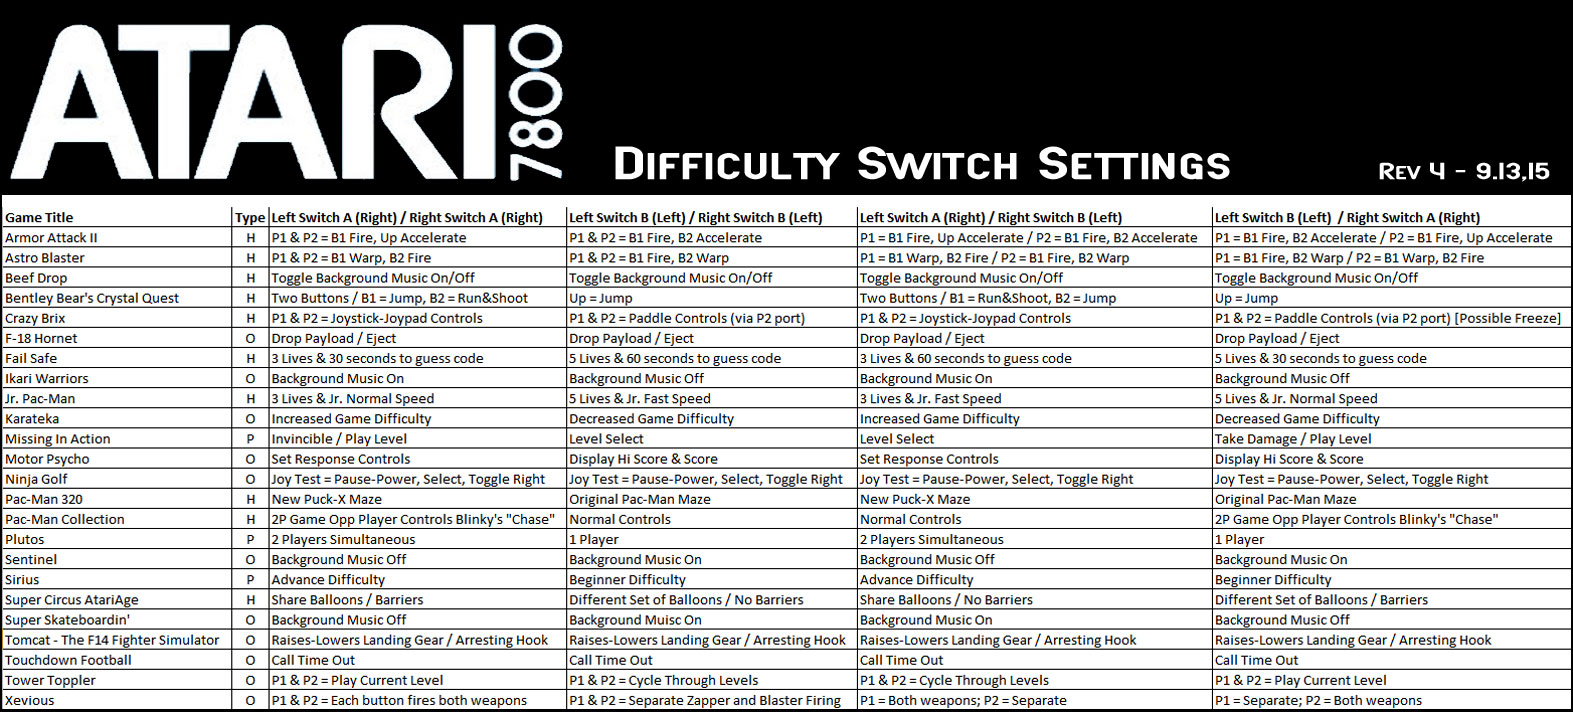 Atari 7800 Difficulty Switch settings